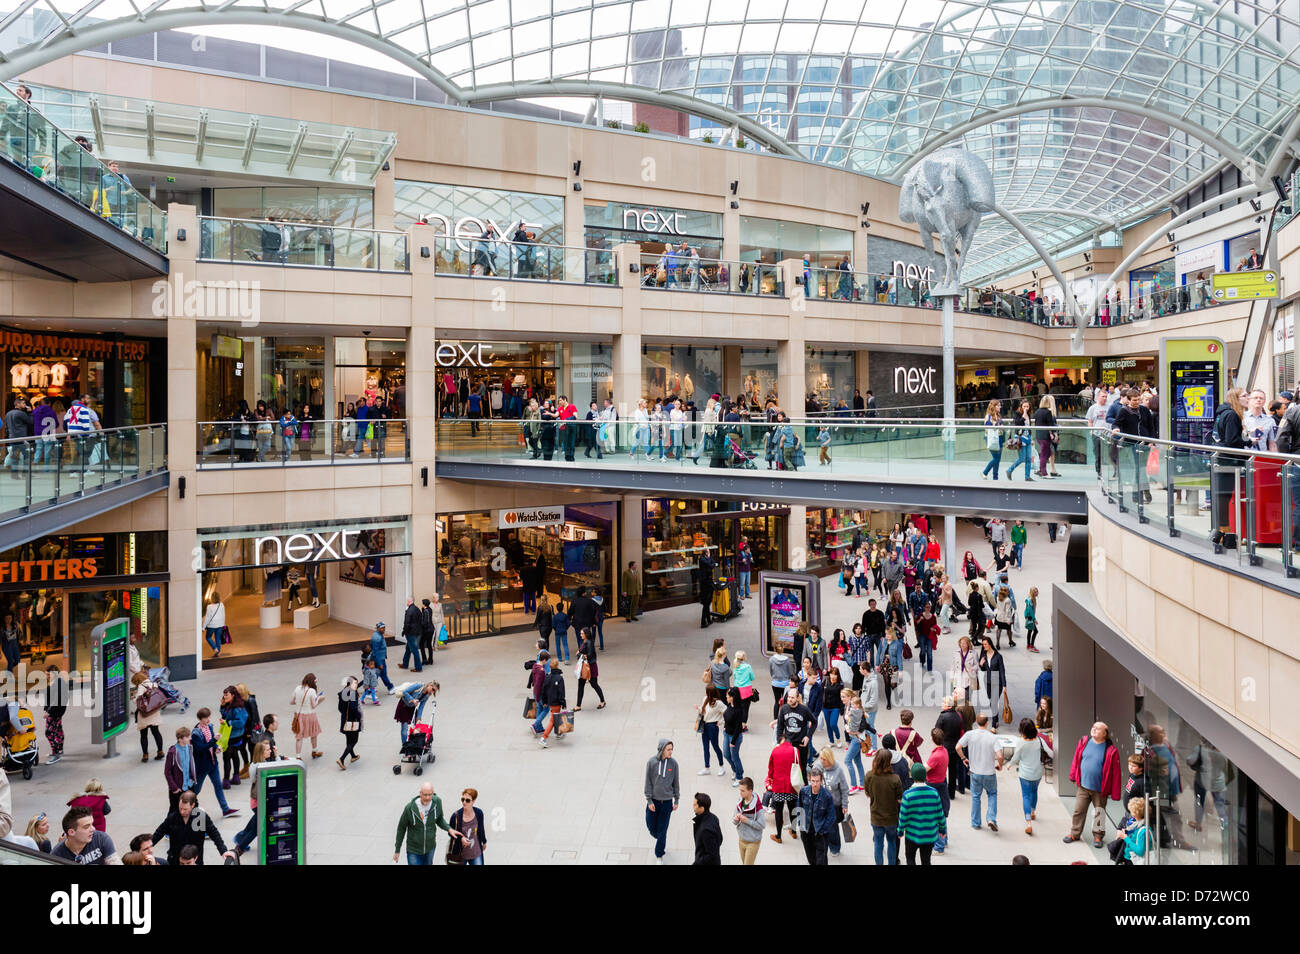 The new (as of 2013) Trinity Leeds shopping centre, Leeds, West Yorkshire, UK - Stock Image